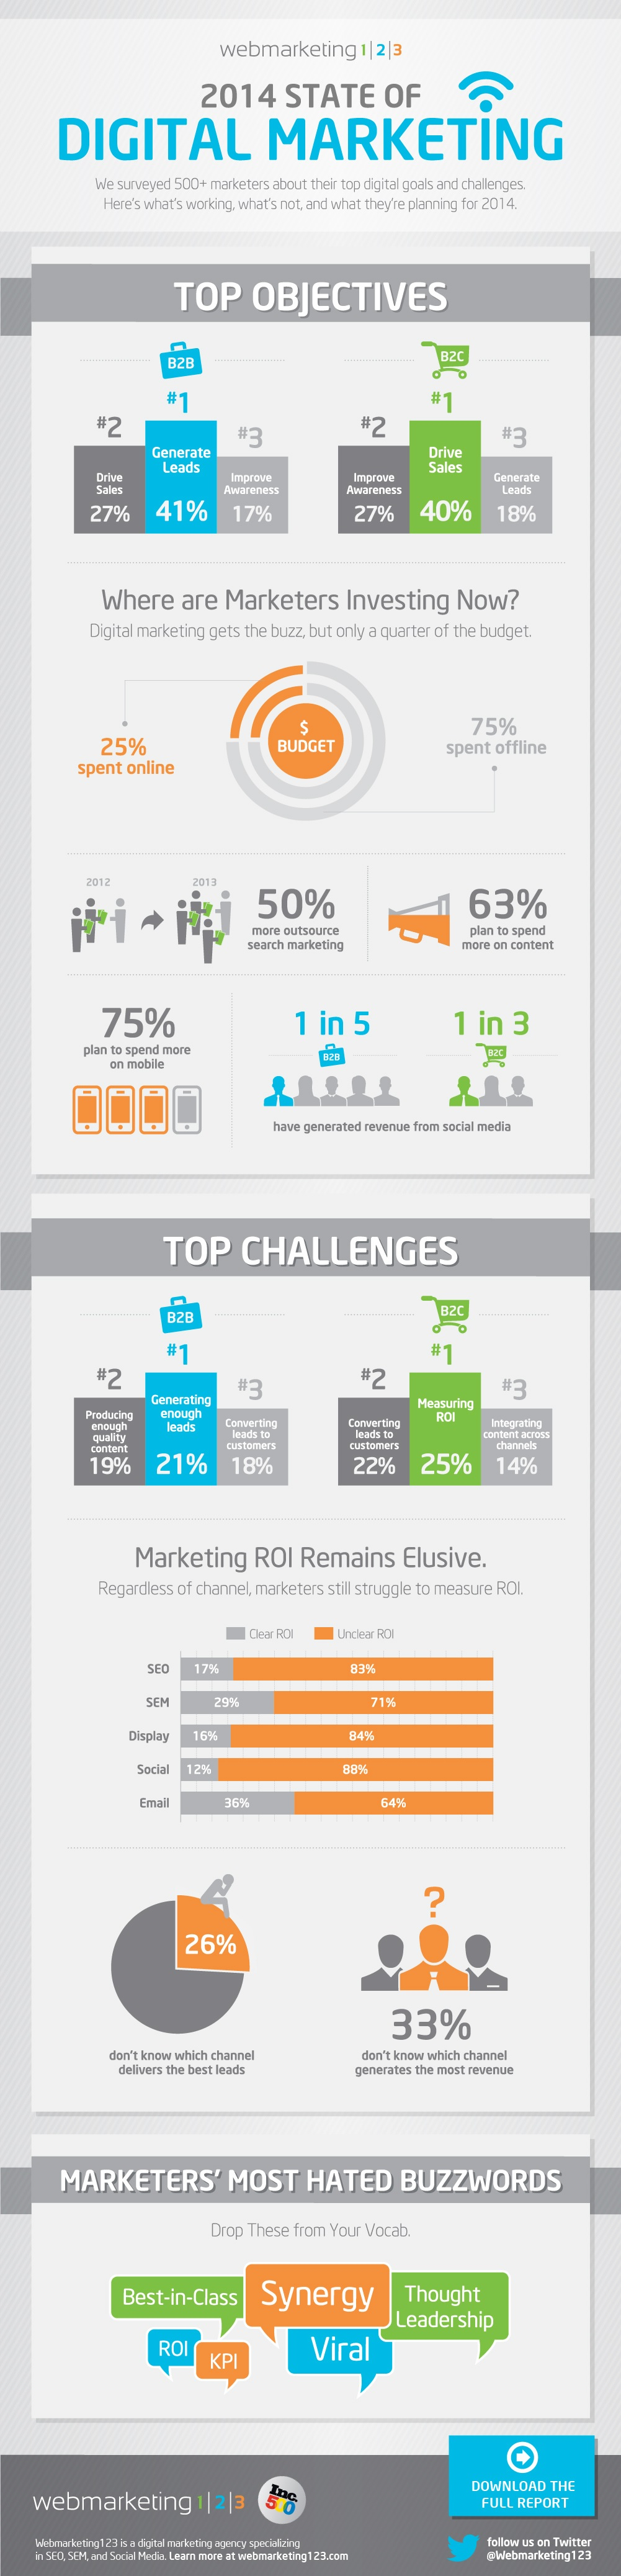 2014-state-of-digital-marketing